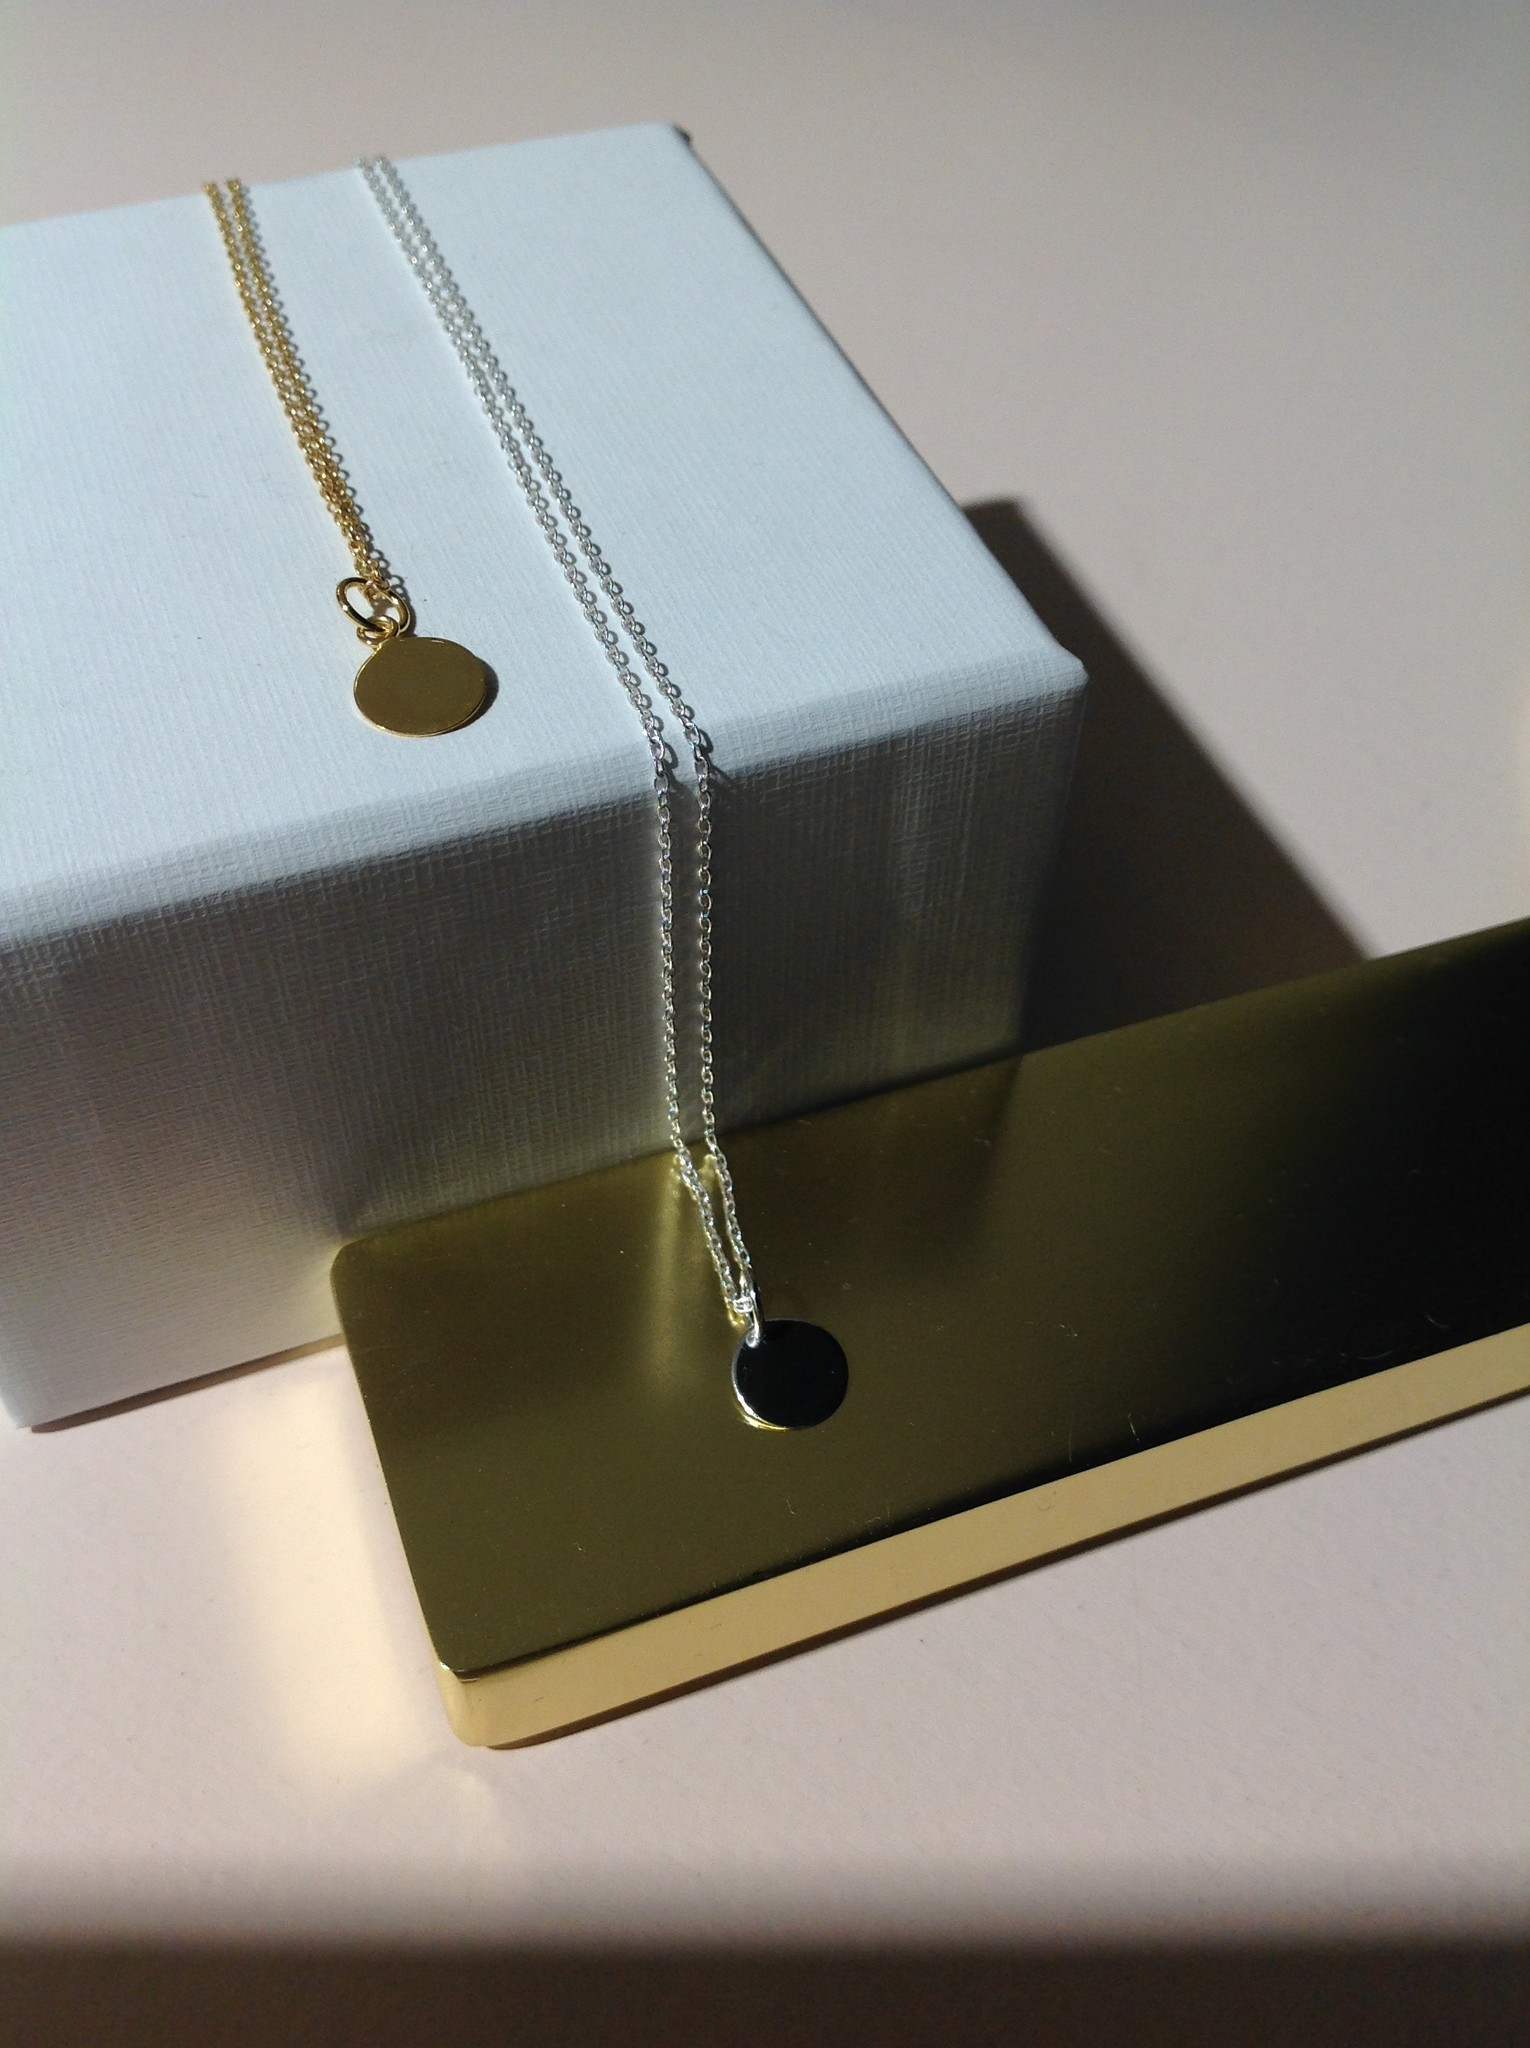 Delicate chain with pendant made of 925 sterling silver - gold-1